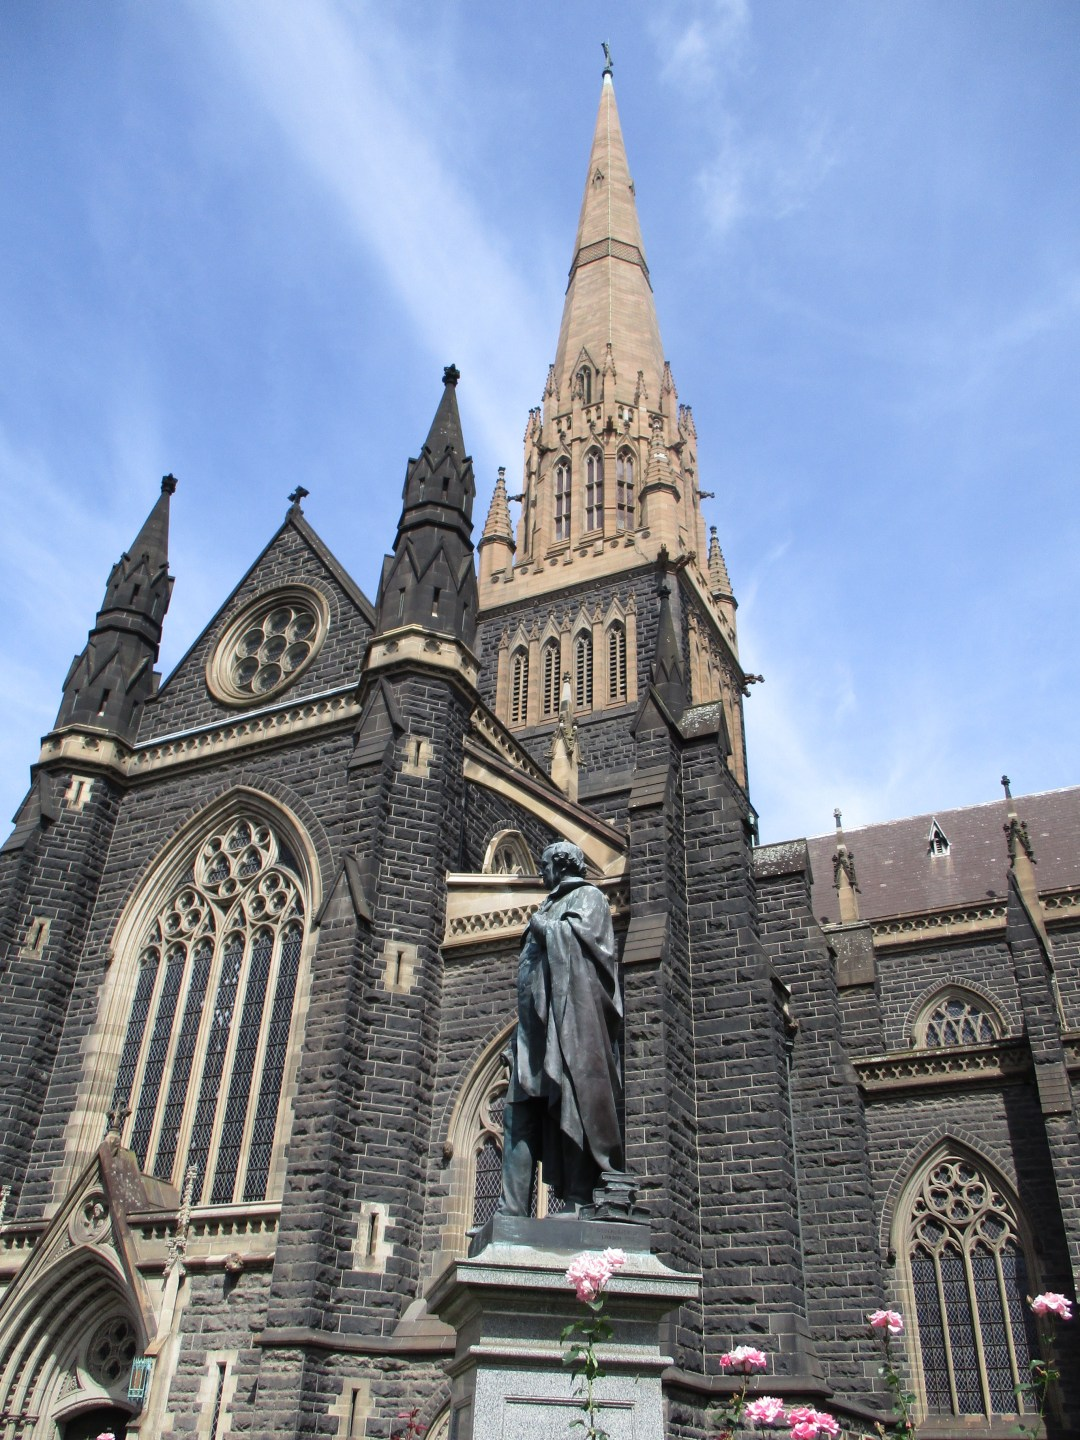 Gothic style St Patrick's cathedral in Melbournewith dark stone brickwork and blue skies behind